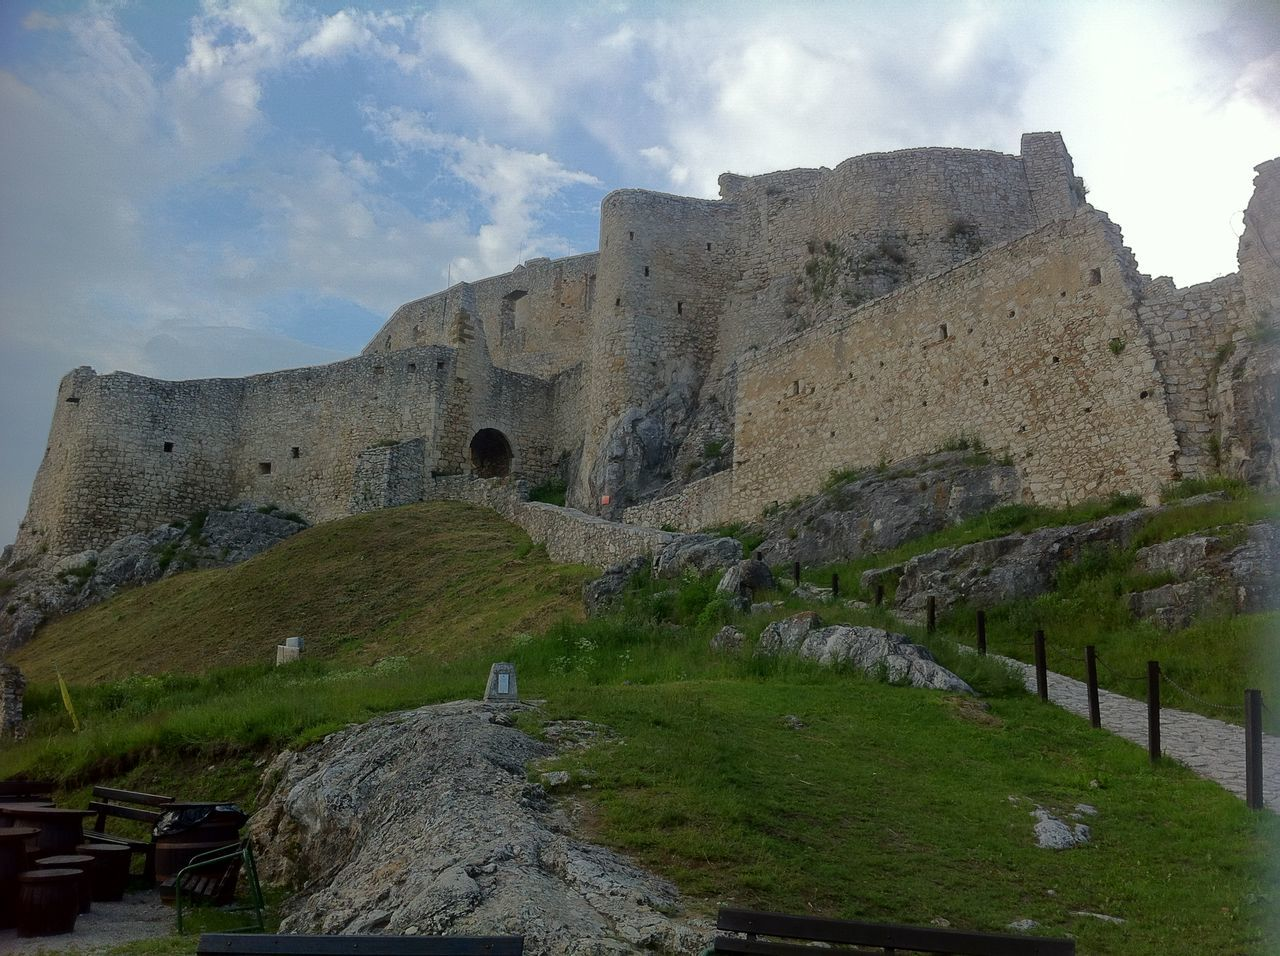 Castle ruins at Czech Republic Architecture Castel Castle Castle Ruin Castle View  Castle Walls Castles Czech Republic Old Architecture Outdoors Stone Wall Stonestructures Walls